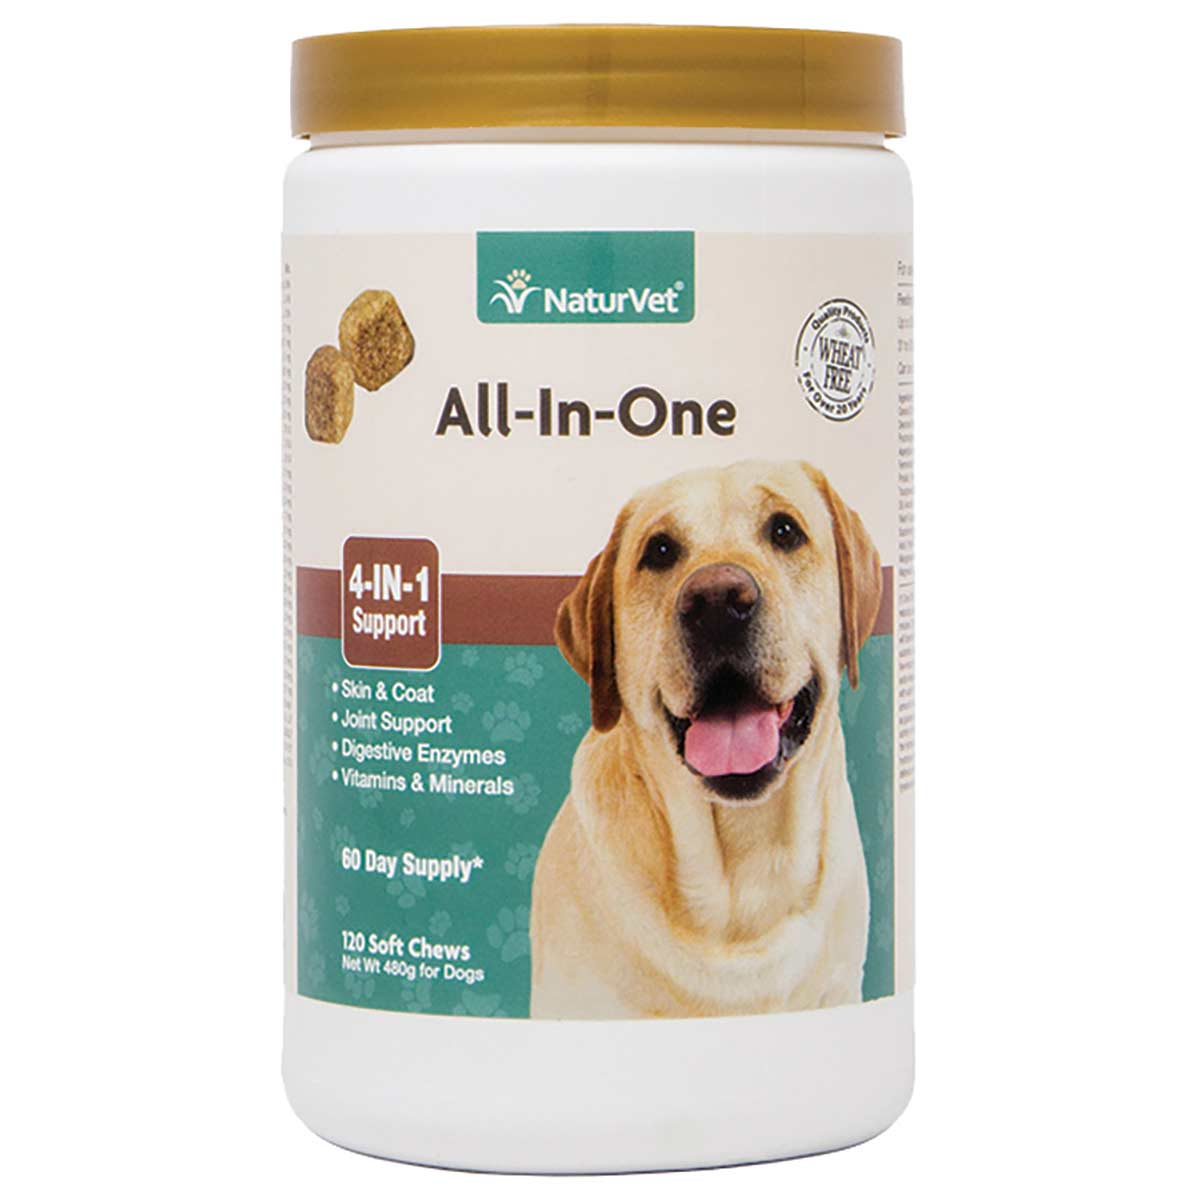 NaturVet All-in-One Vitamin Soft Chew for Dogs - 120 Count